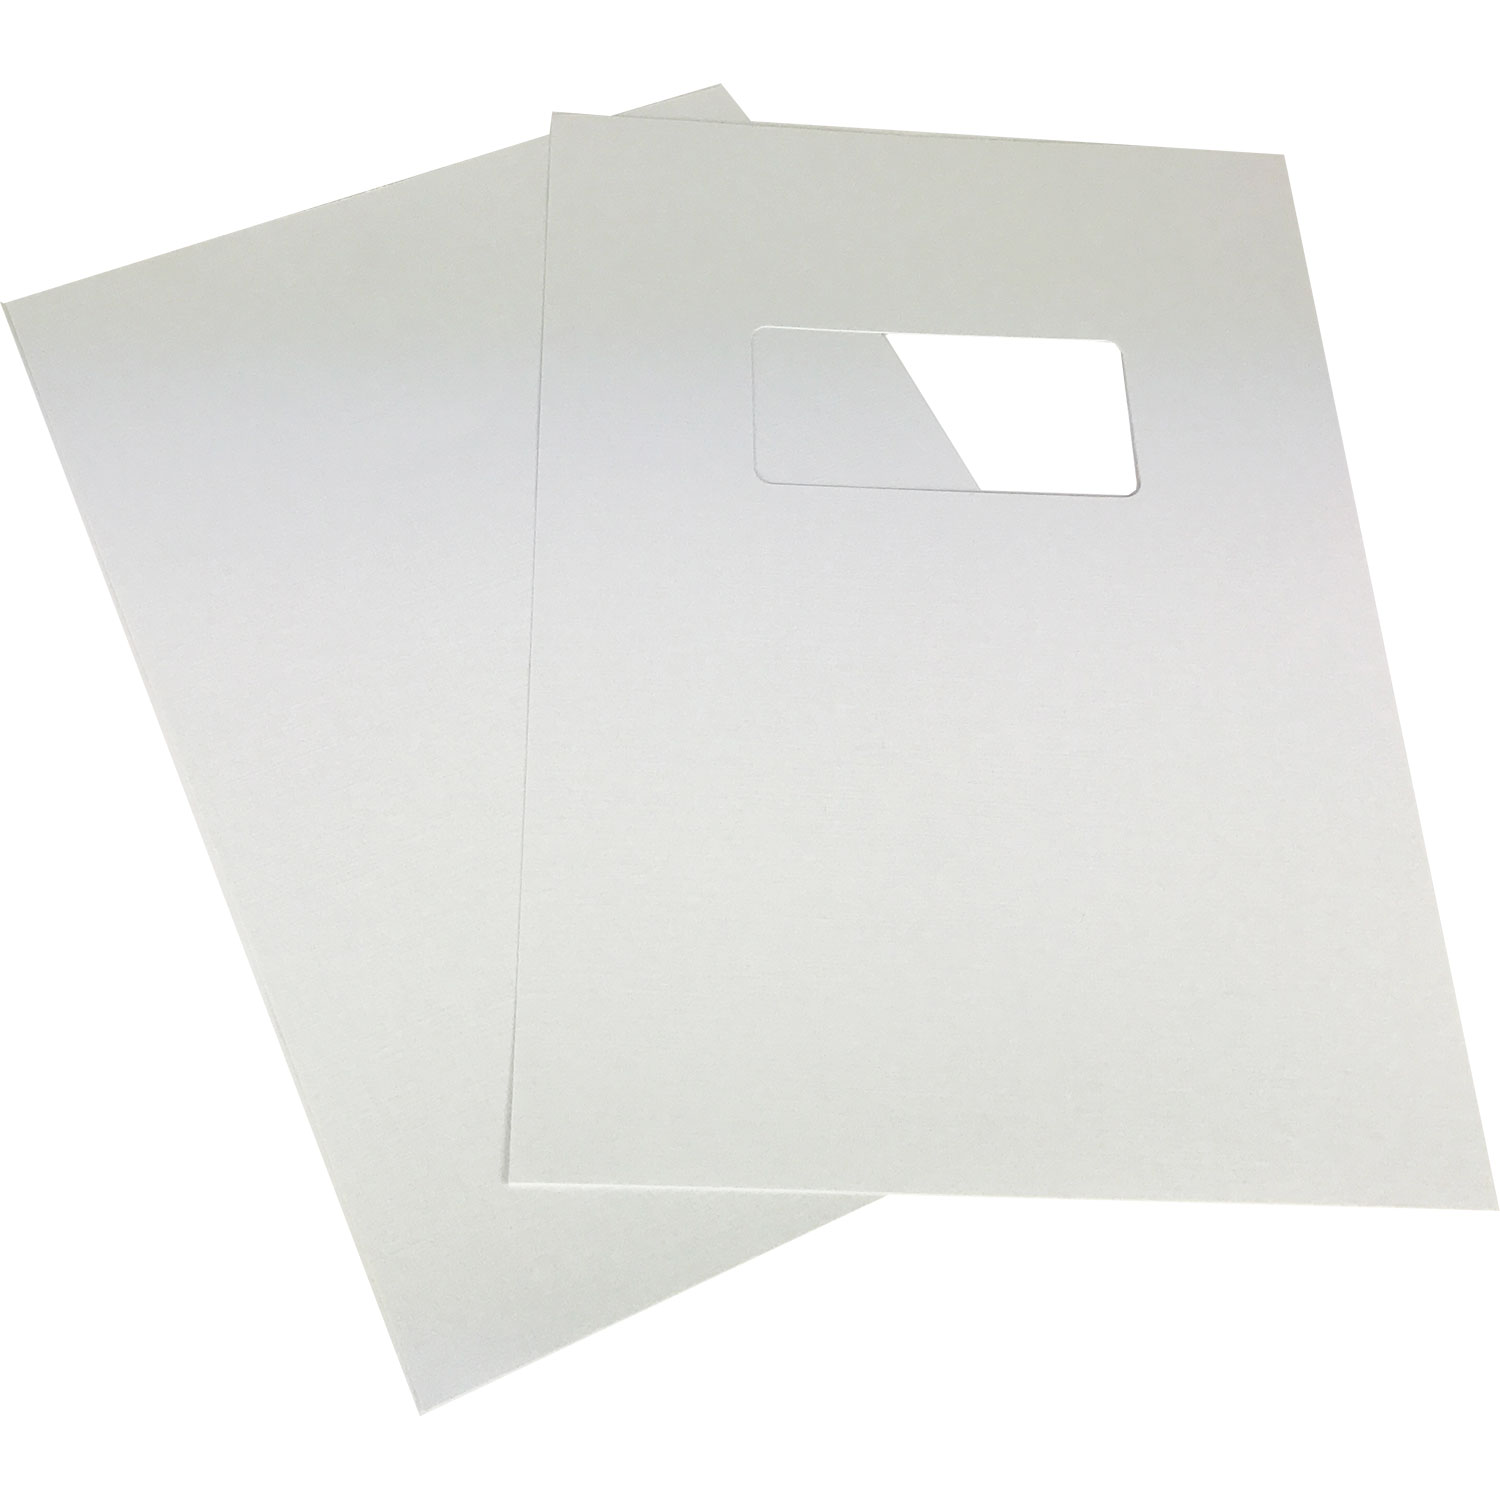 White Linen A4 Binding Covers - Window Cut-Out (250+250)